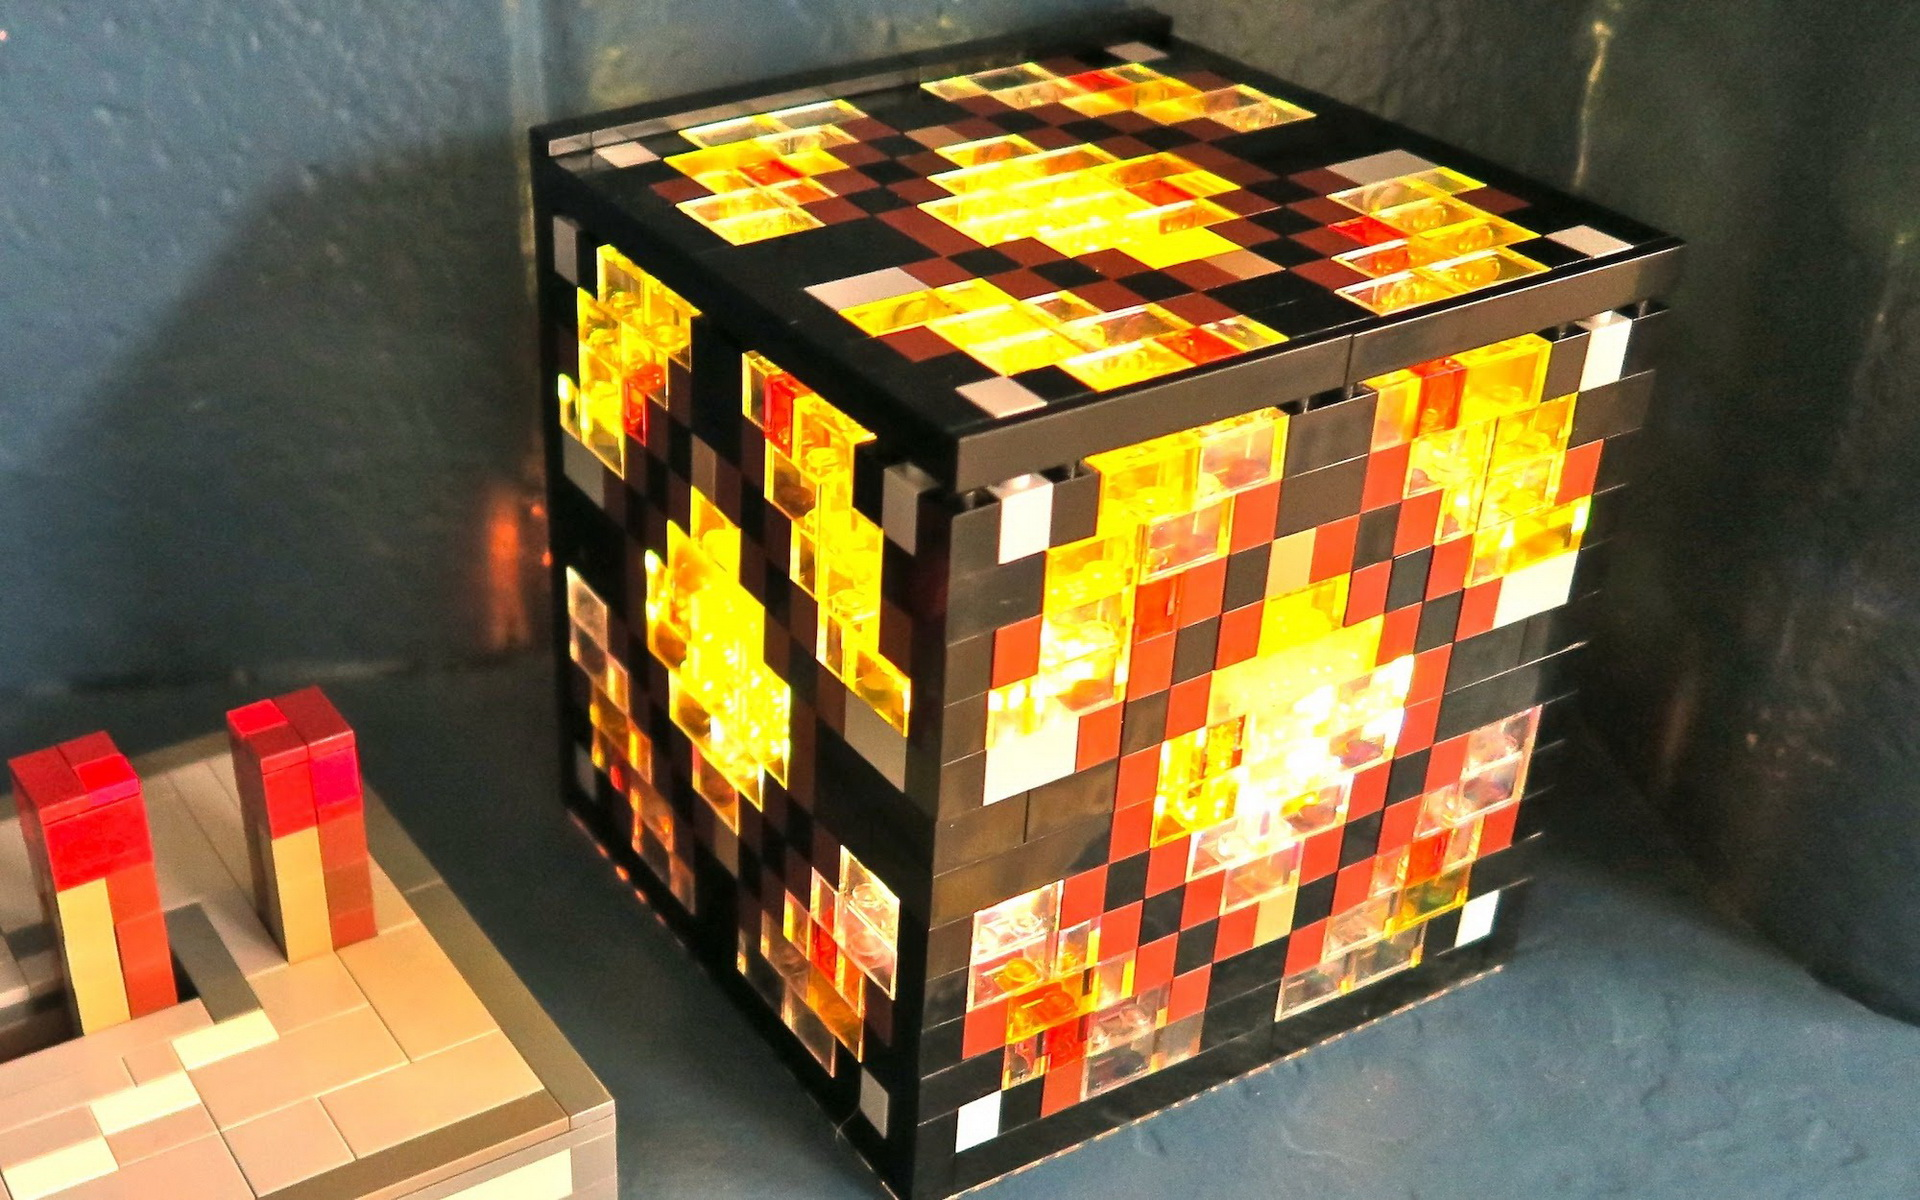 Minecraft how to make redstone lamp 10 tips for real life now you know how to make redstone lamp minecraft aloadofball Images